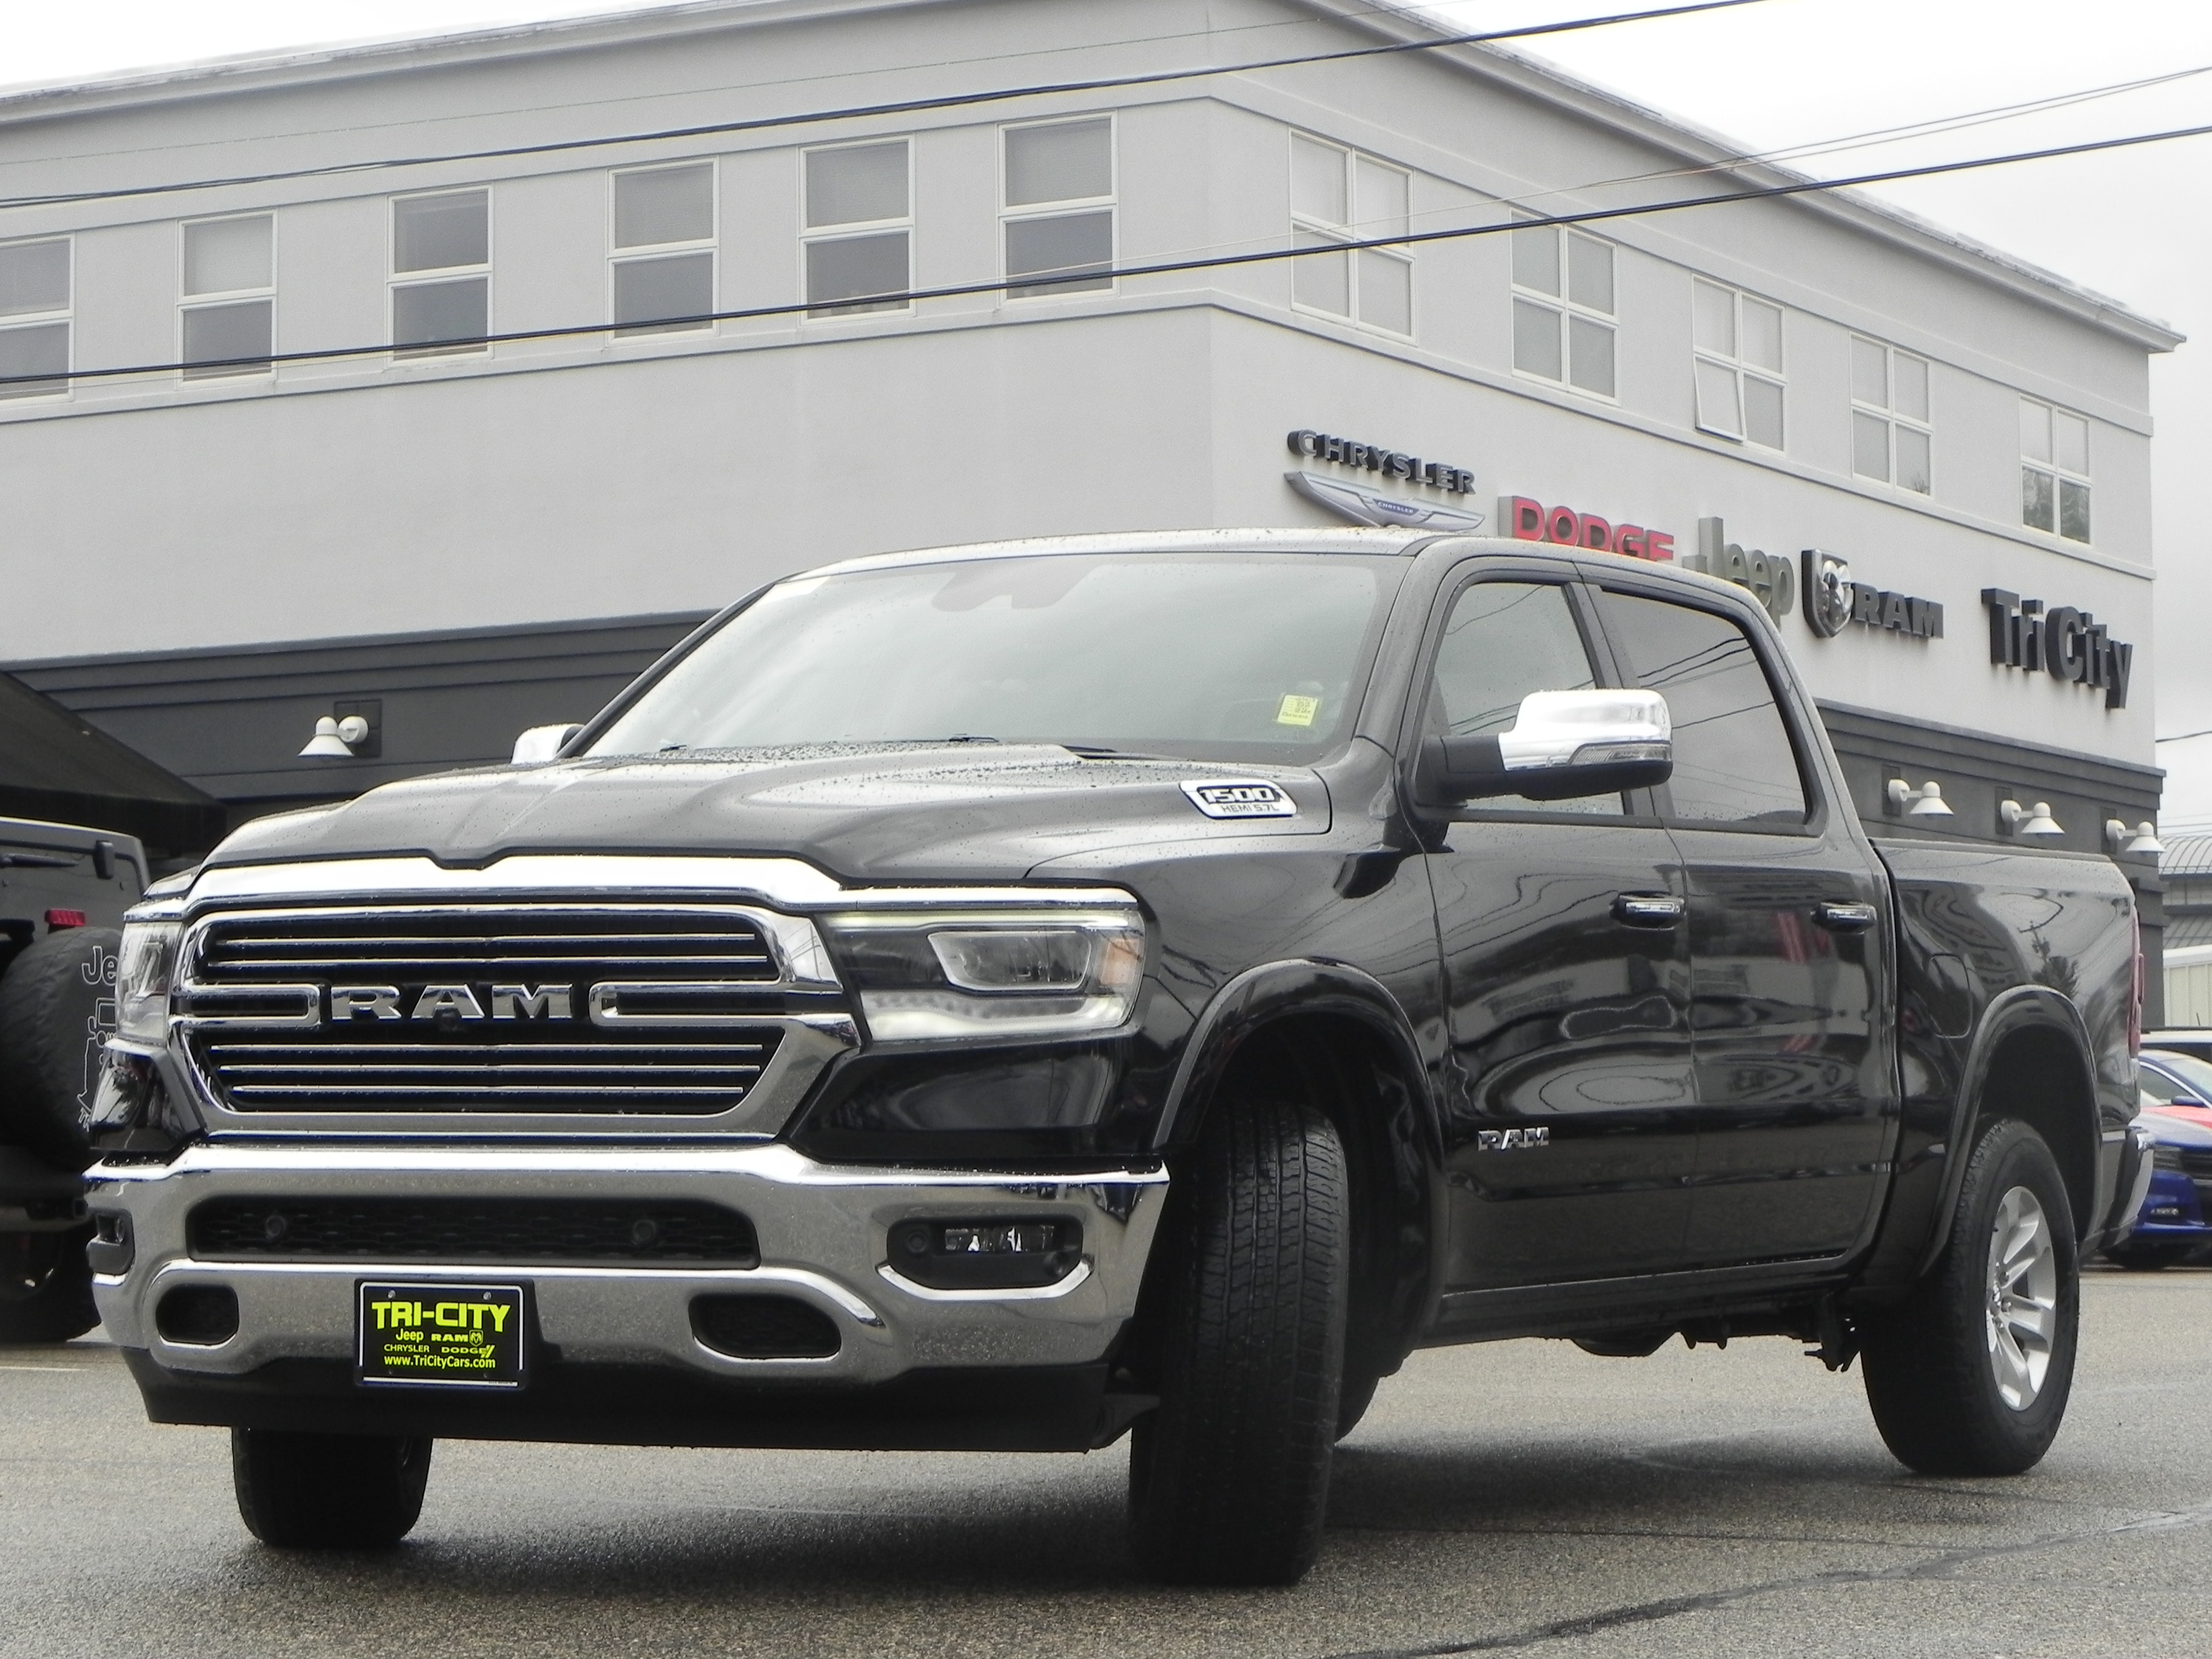 2019 Ram 1500 Crew Cab 4x4, Pickup #219013 - photo 1